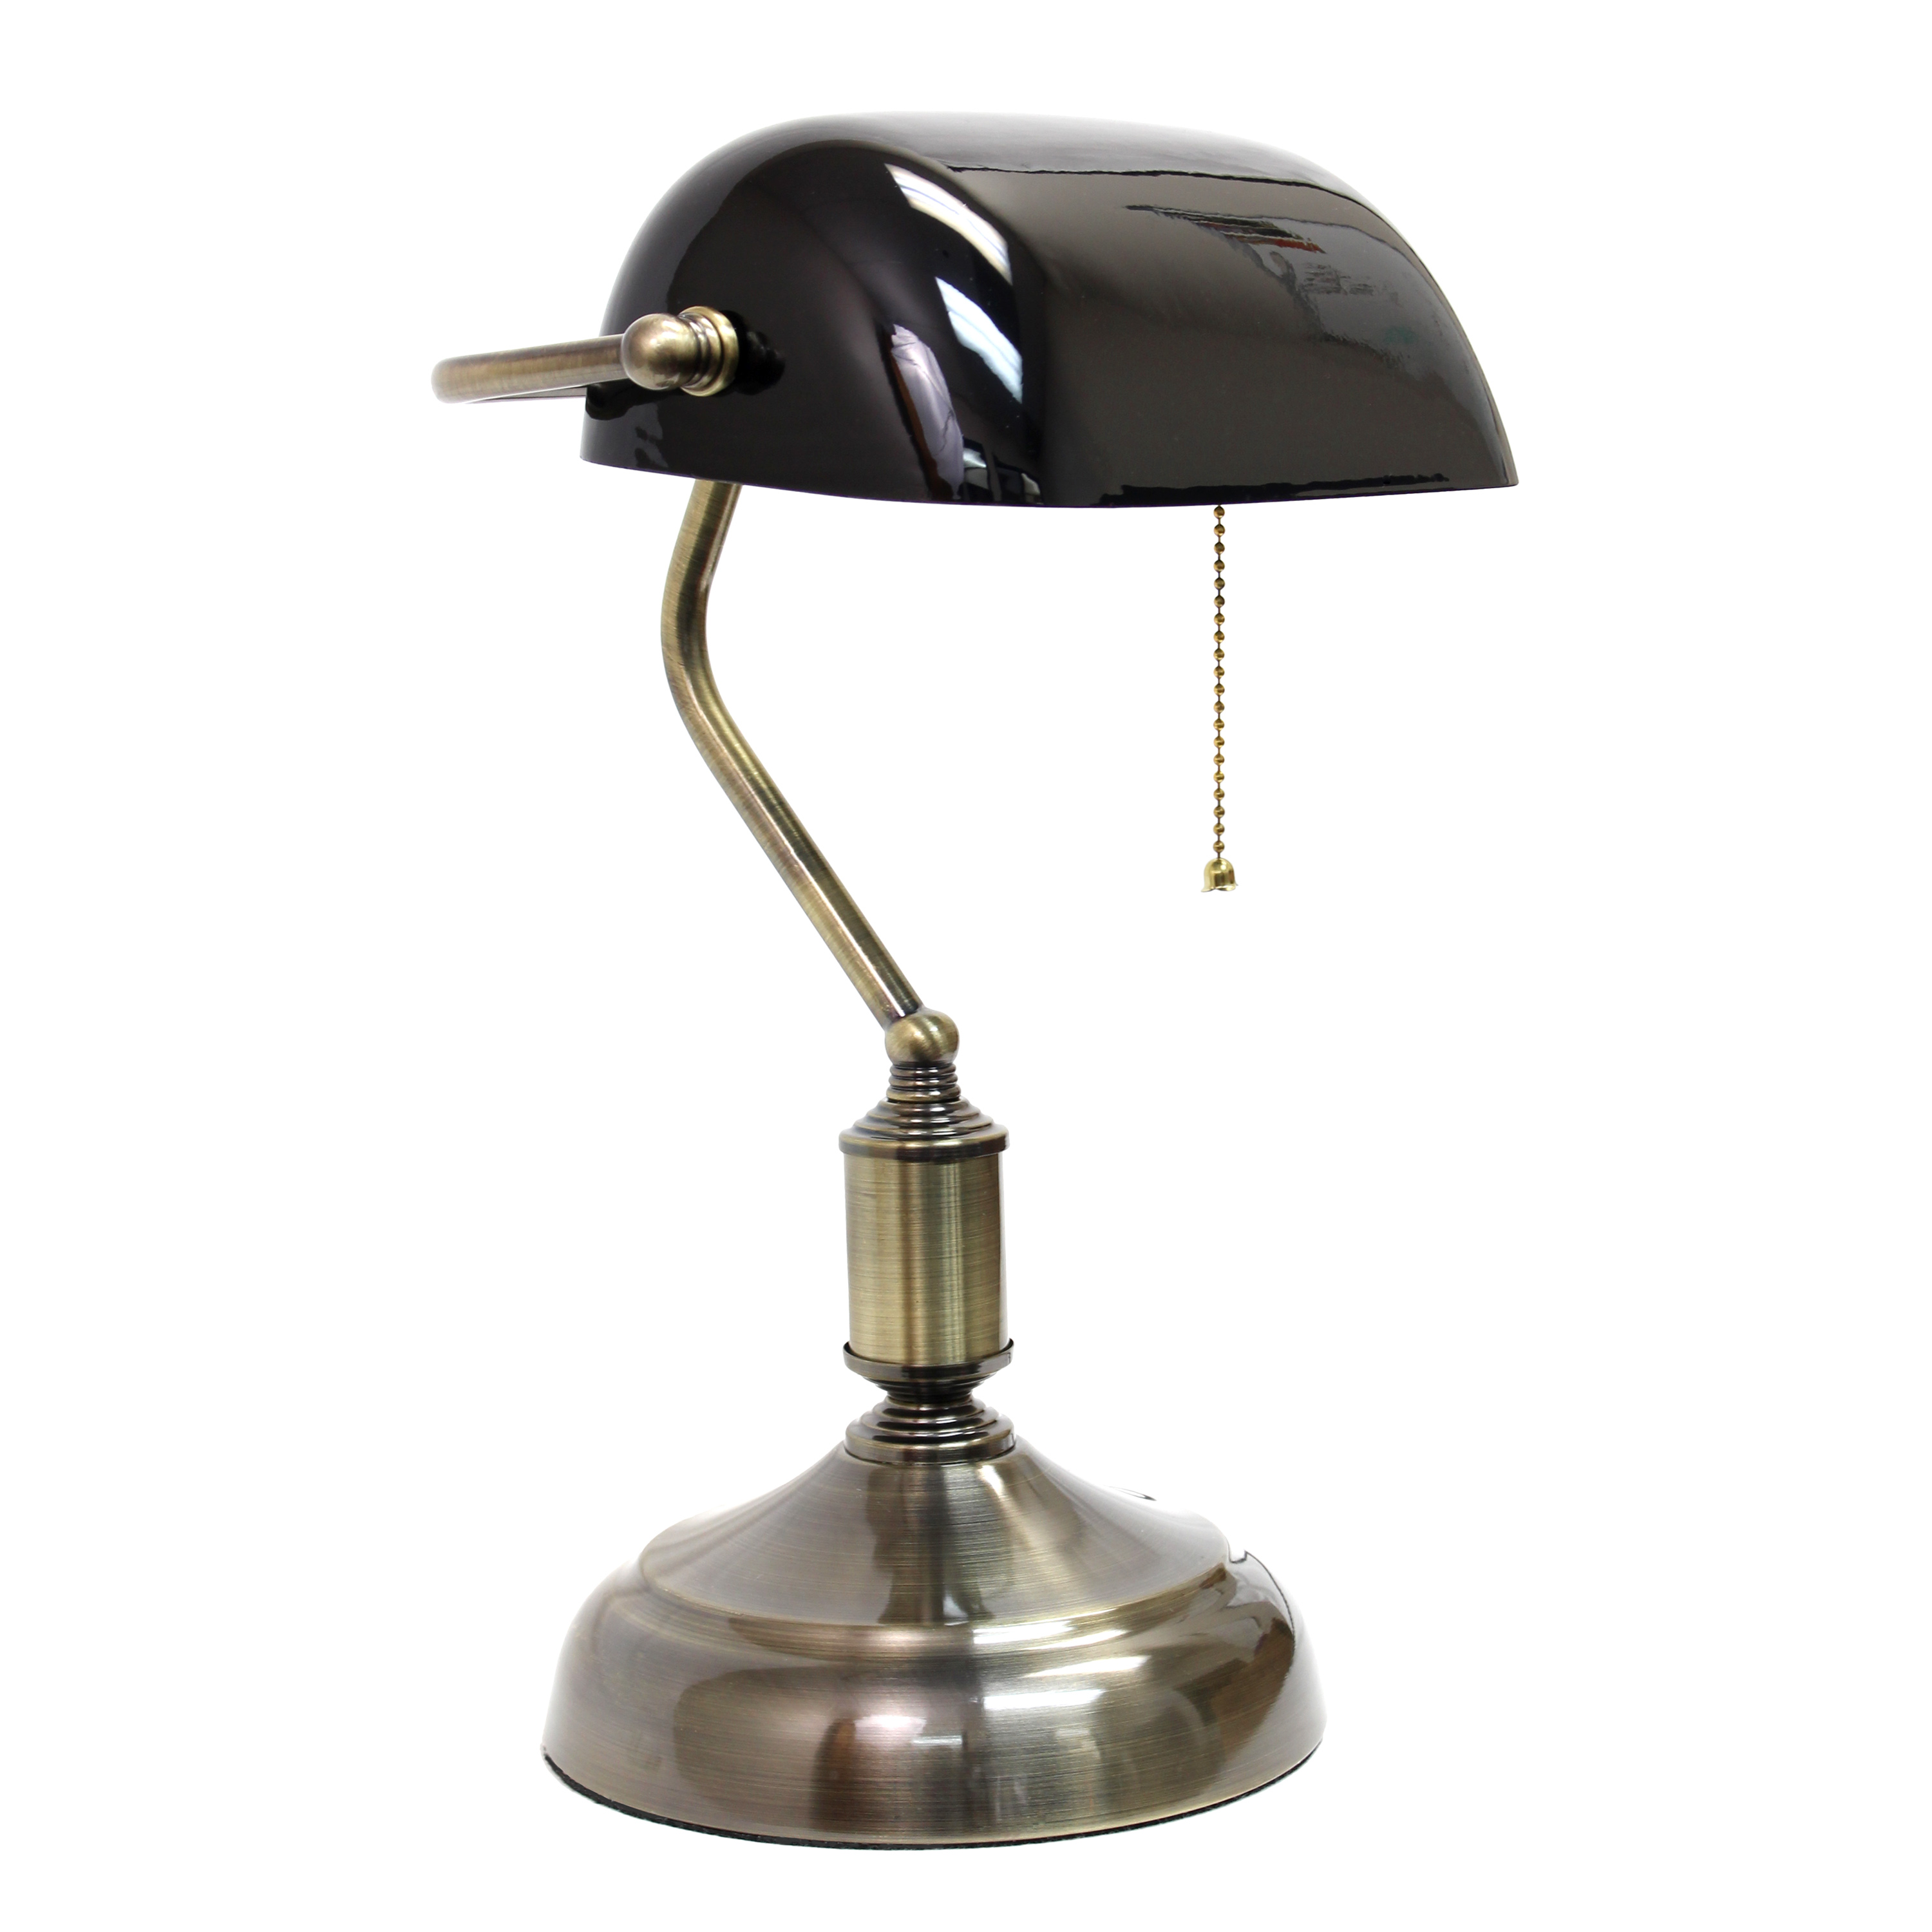 Simple Designs Executive Banker's Desk Lamp with Glass Shade, Black